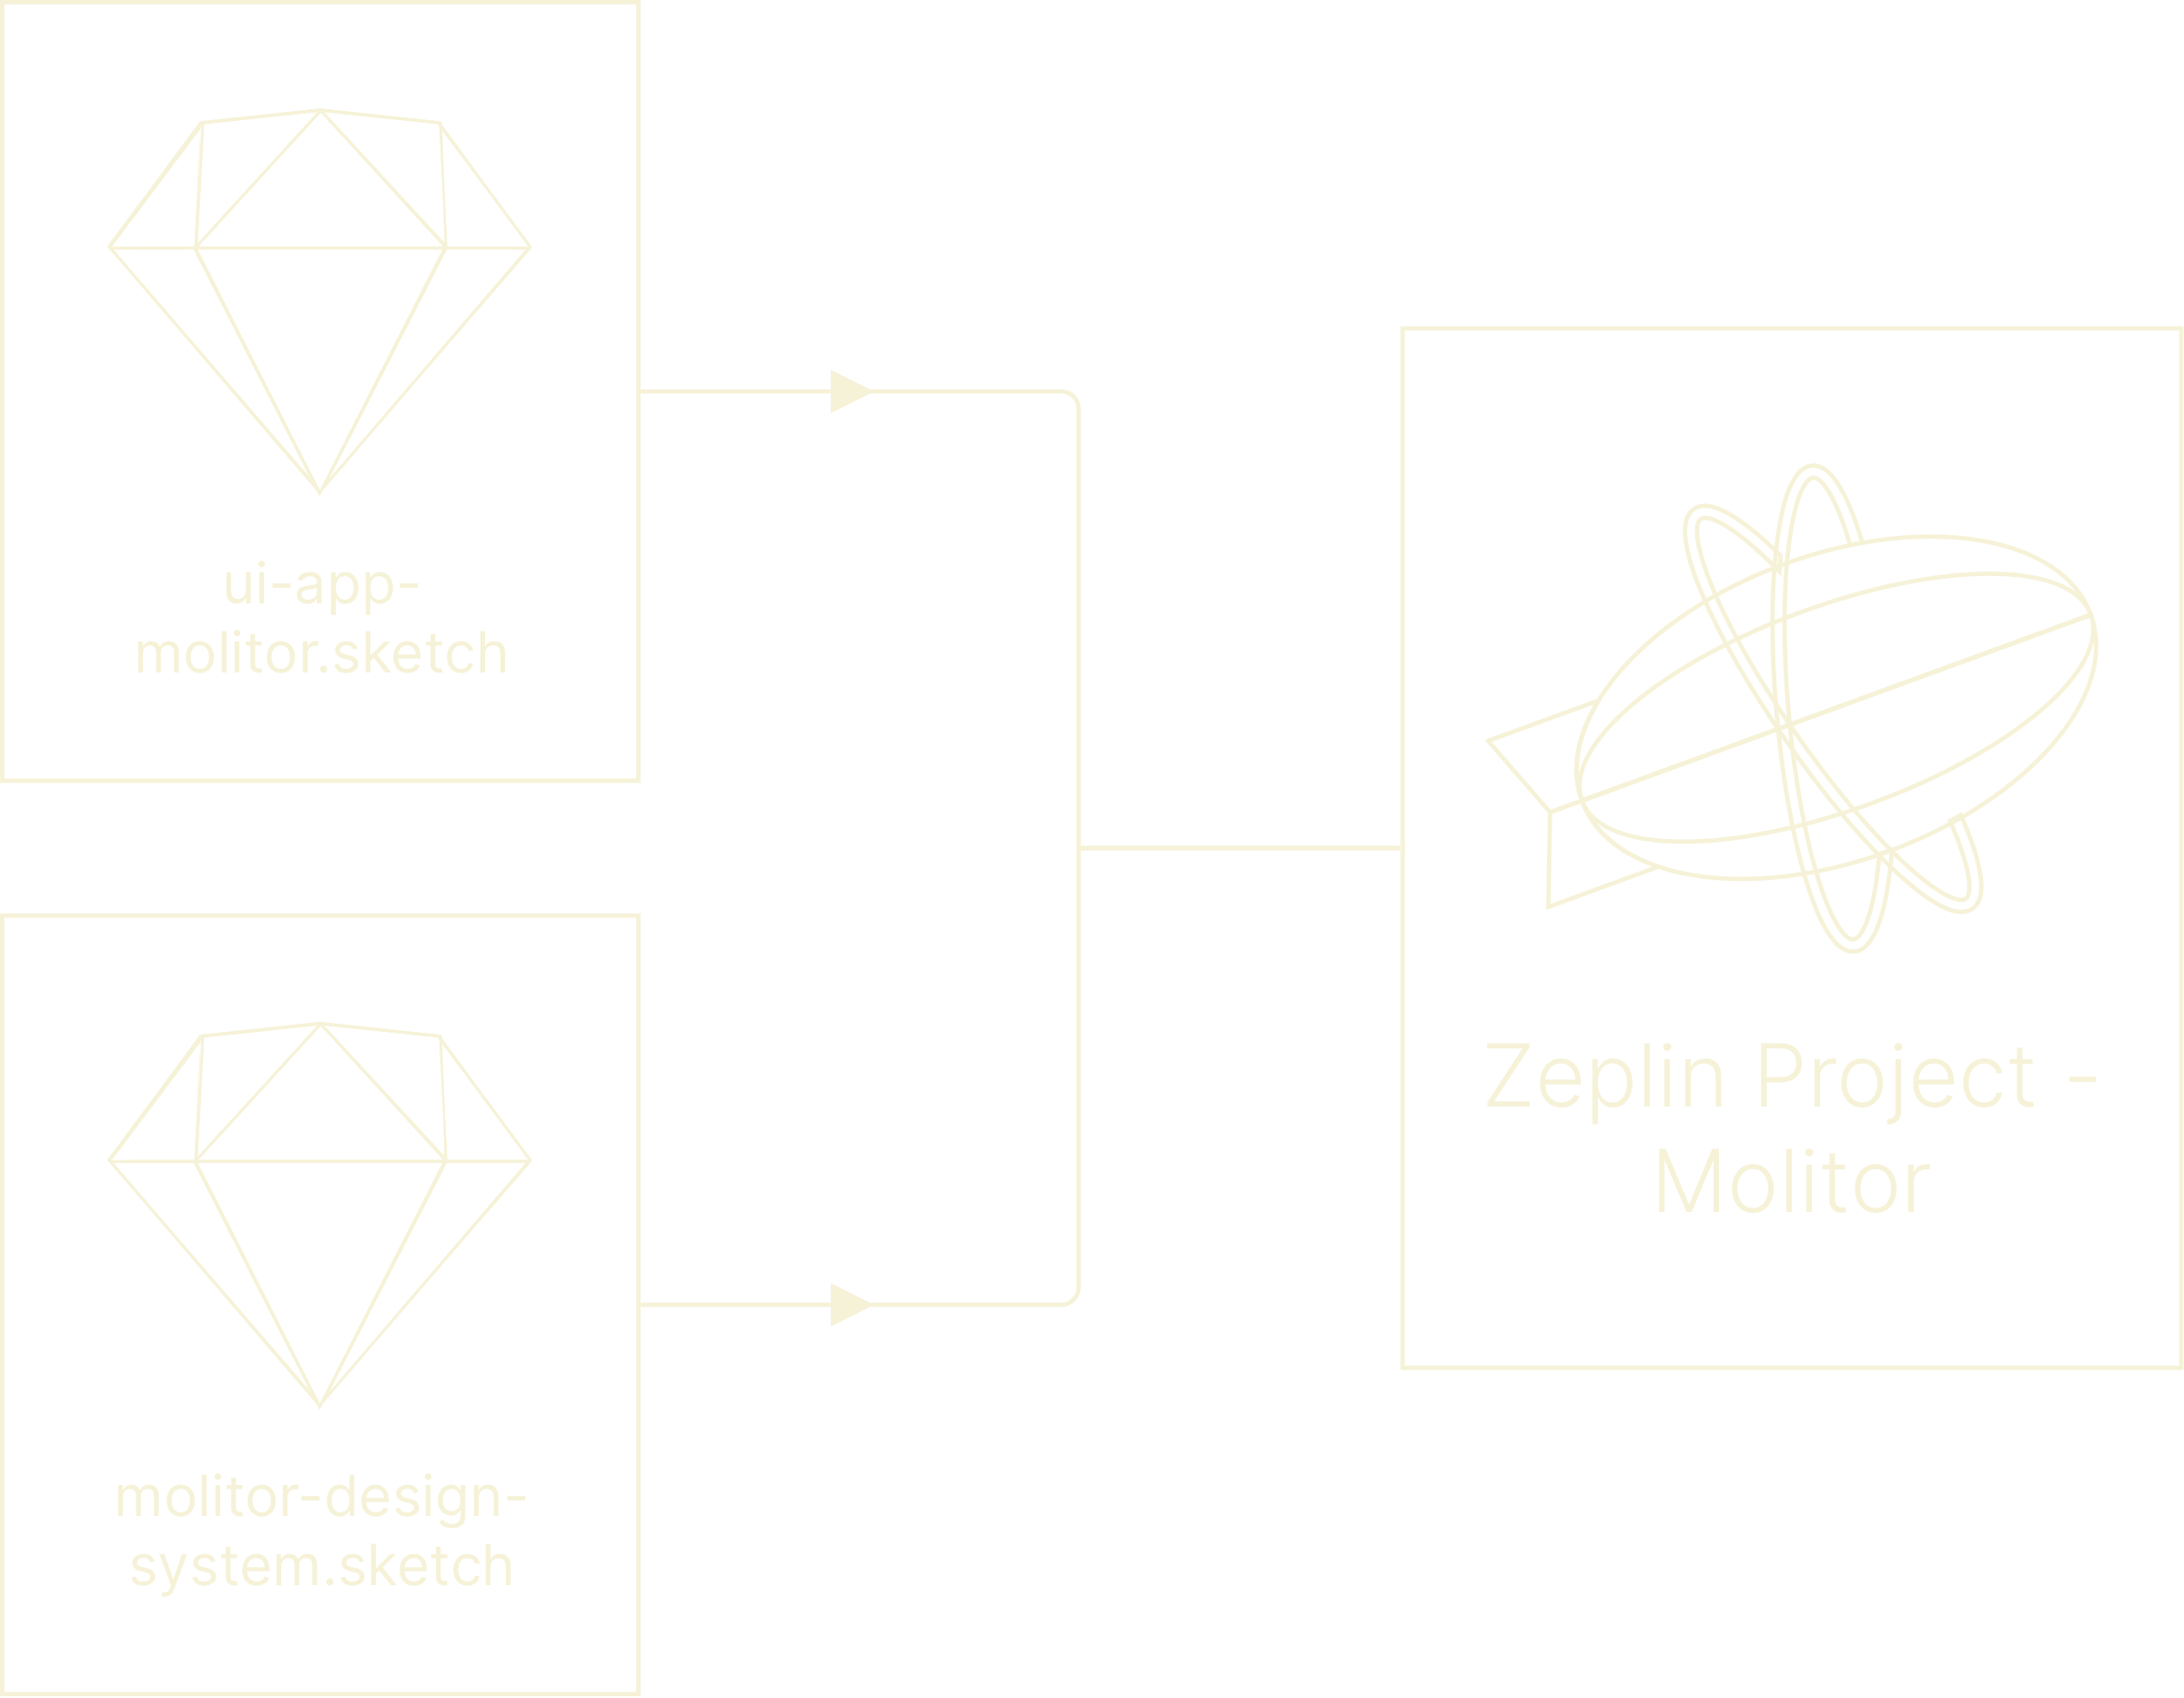 graphic showing process between design and development stages during molitor project